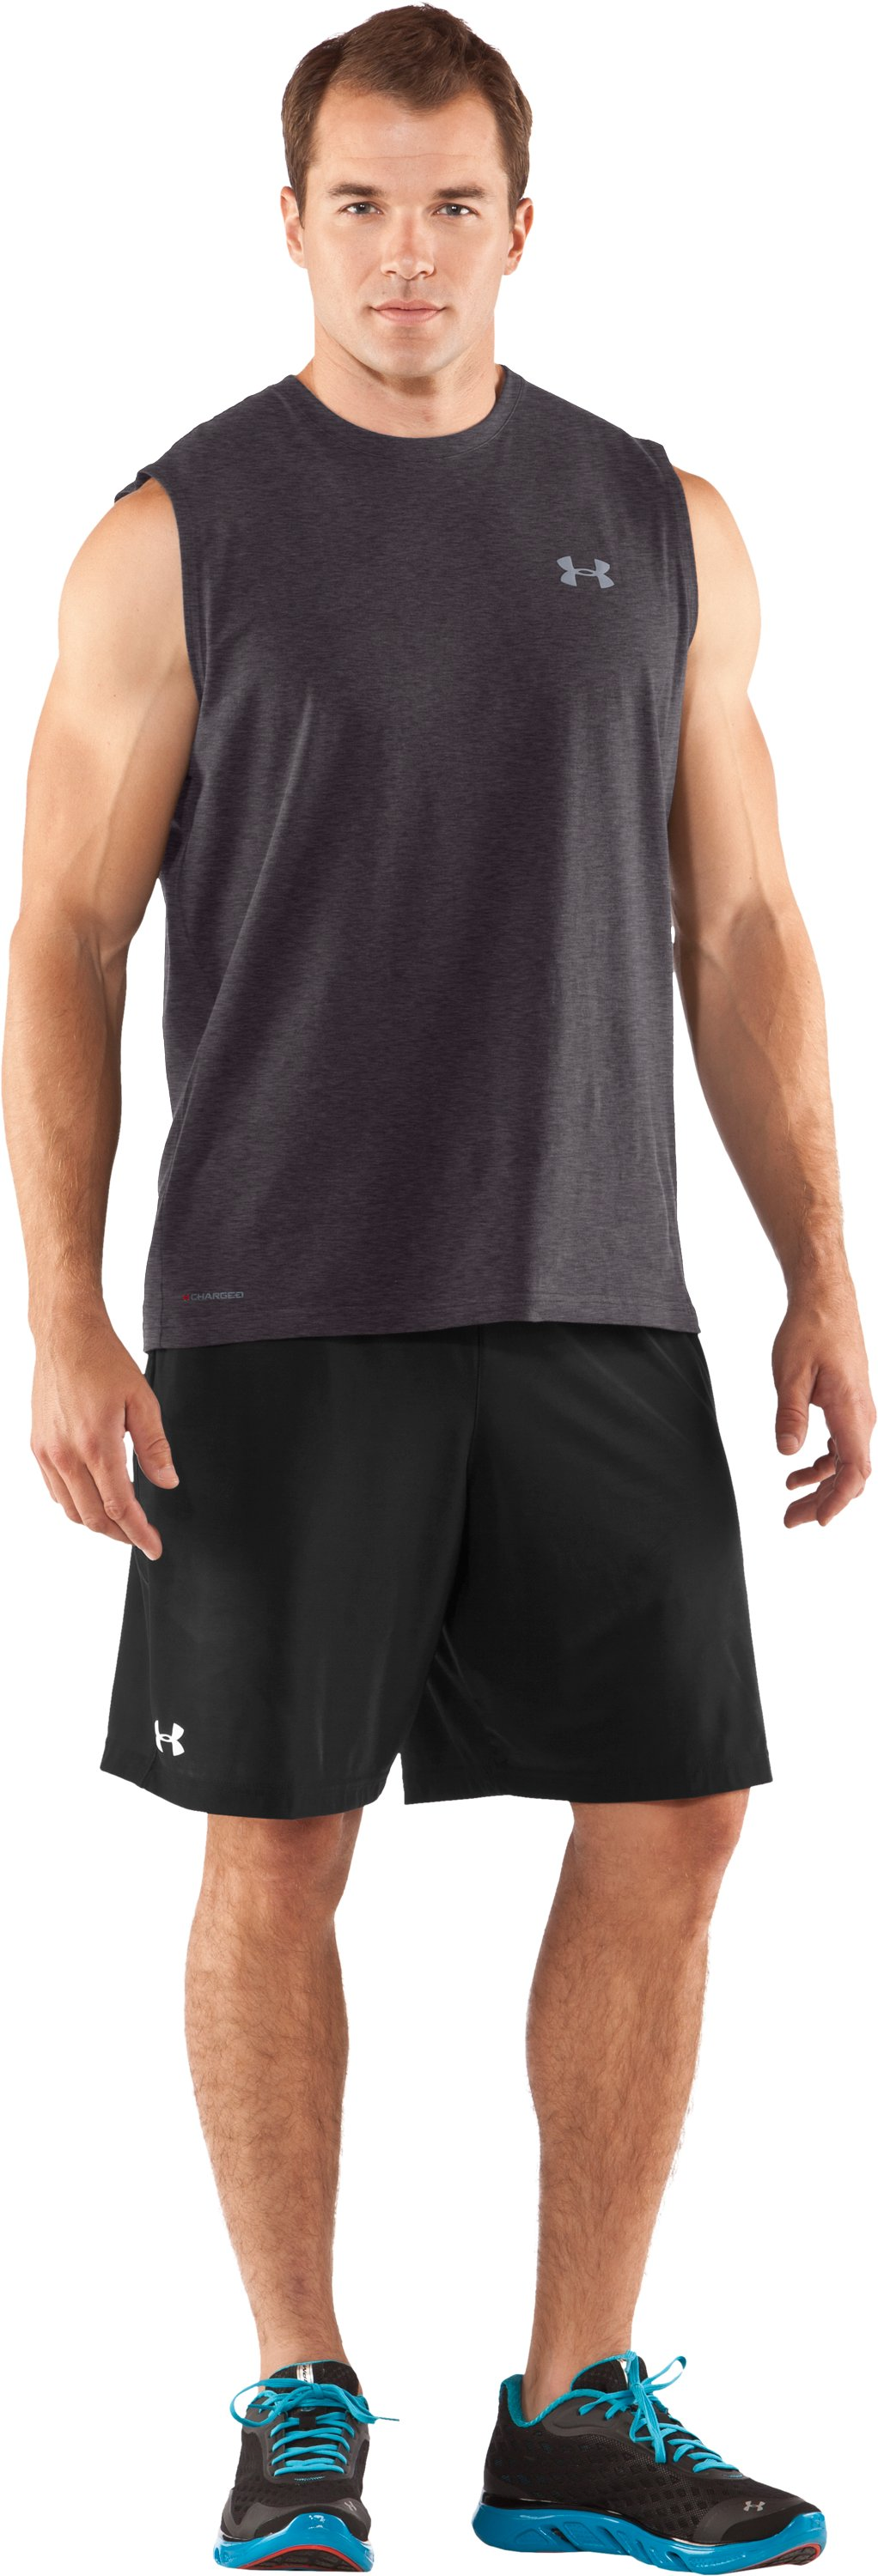 Men's Charged Cotton® Sleeveless T-shirt, Carbon Heather, Front